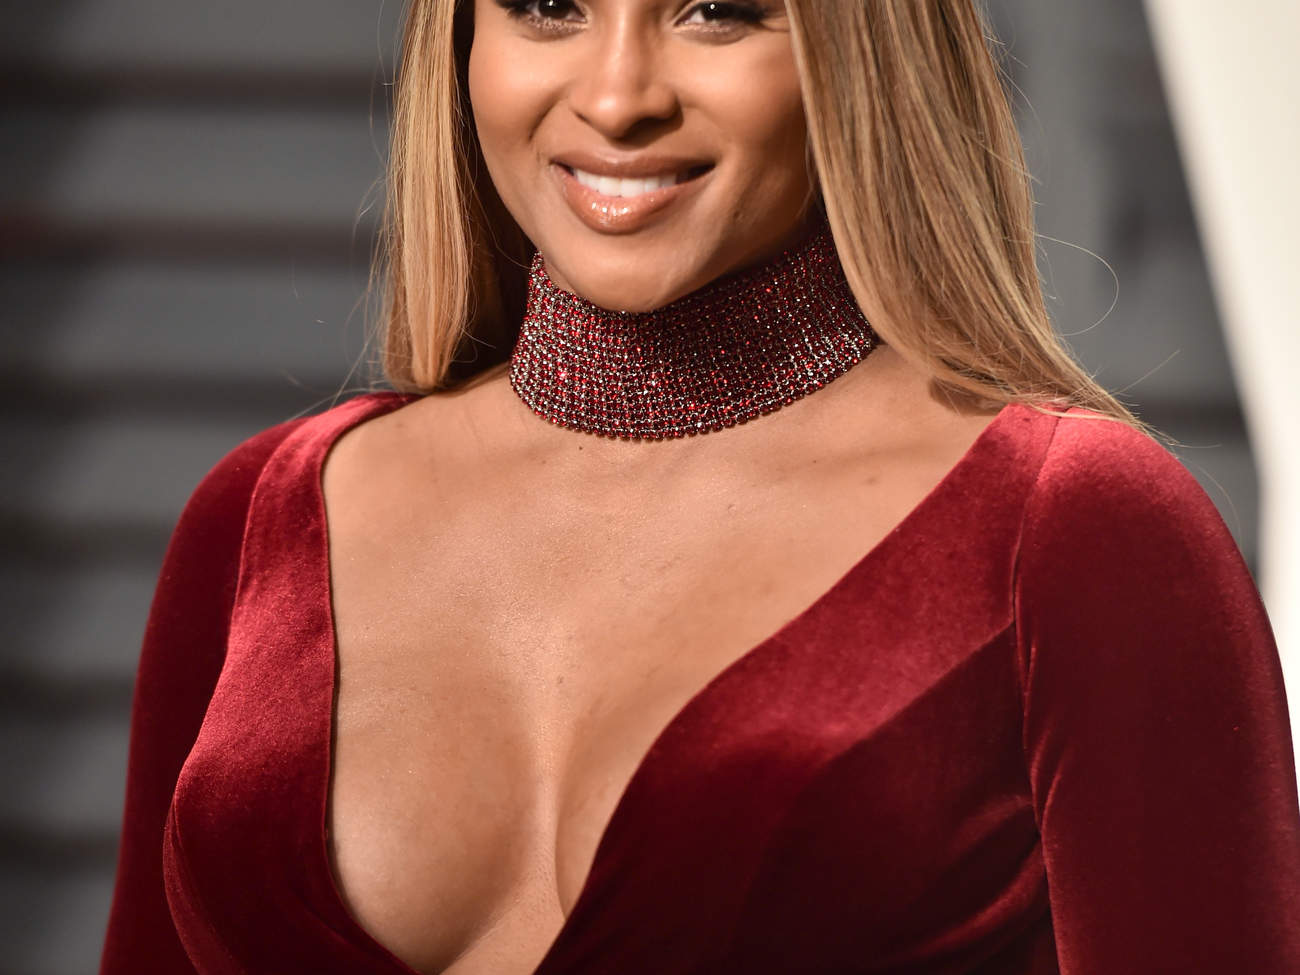 ciara-vanity-fair-close-up